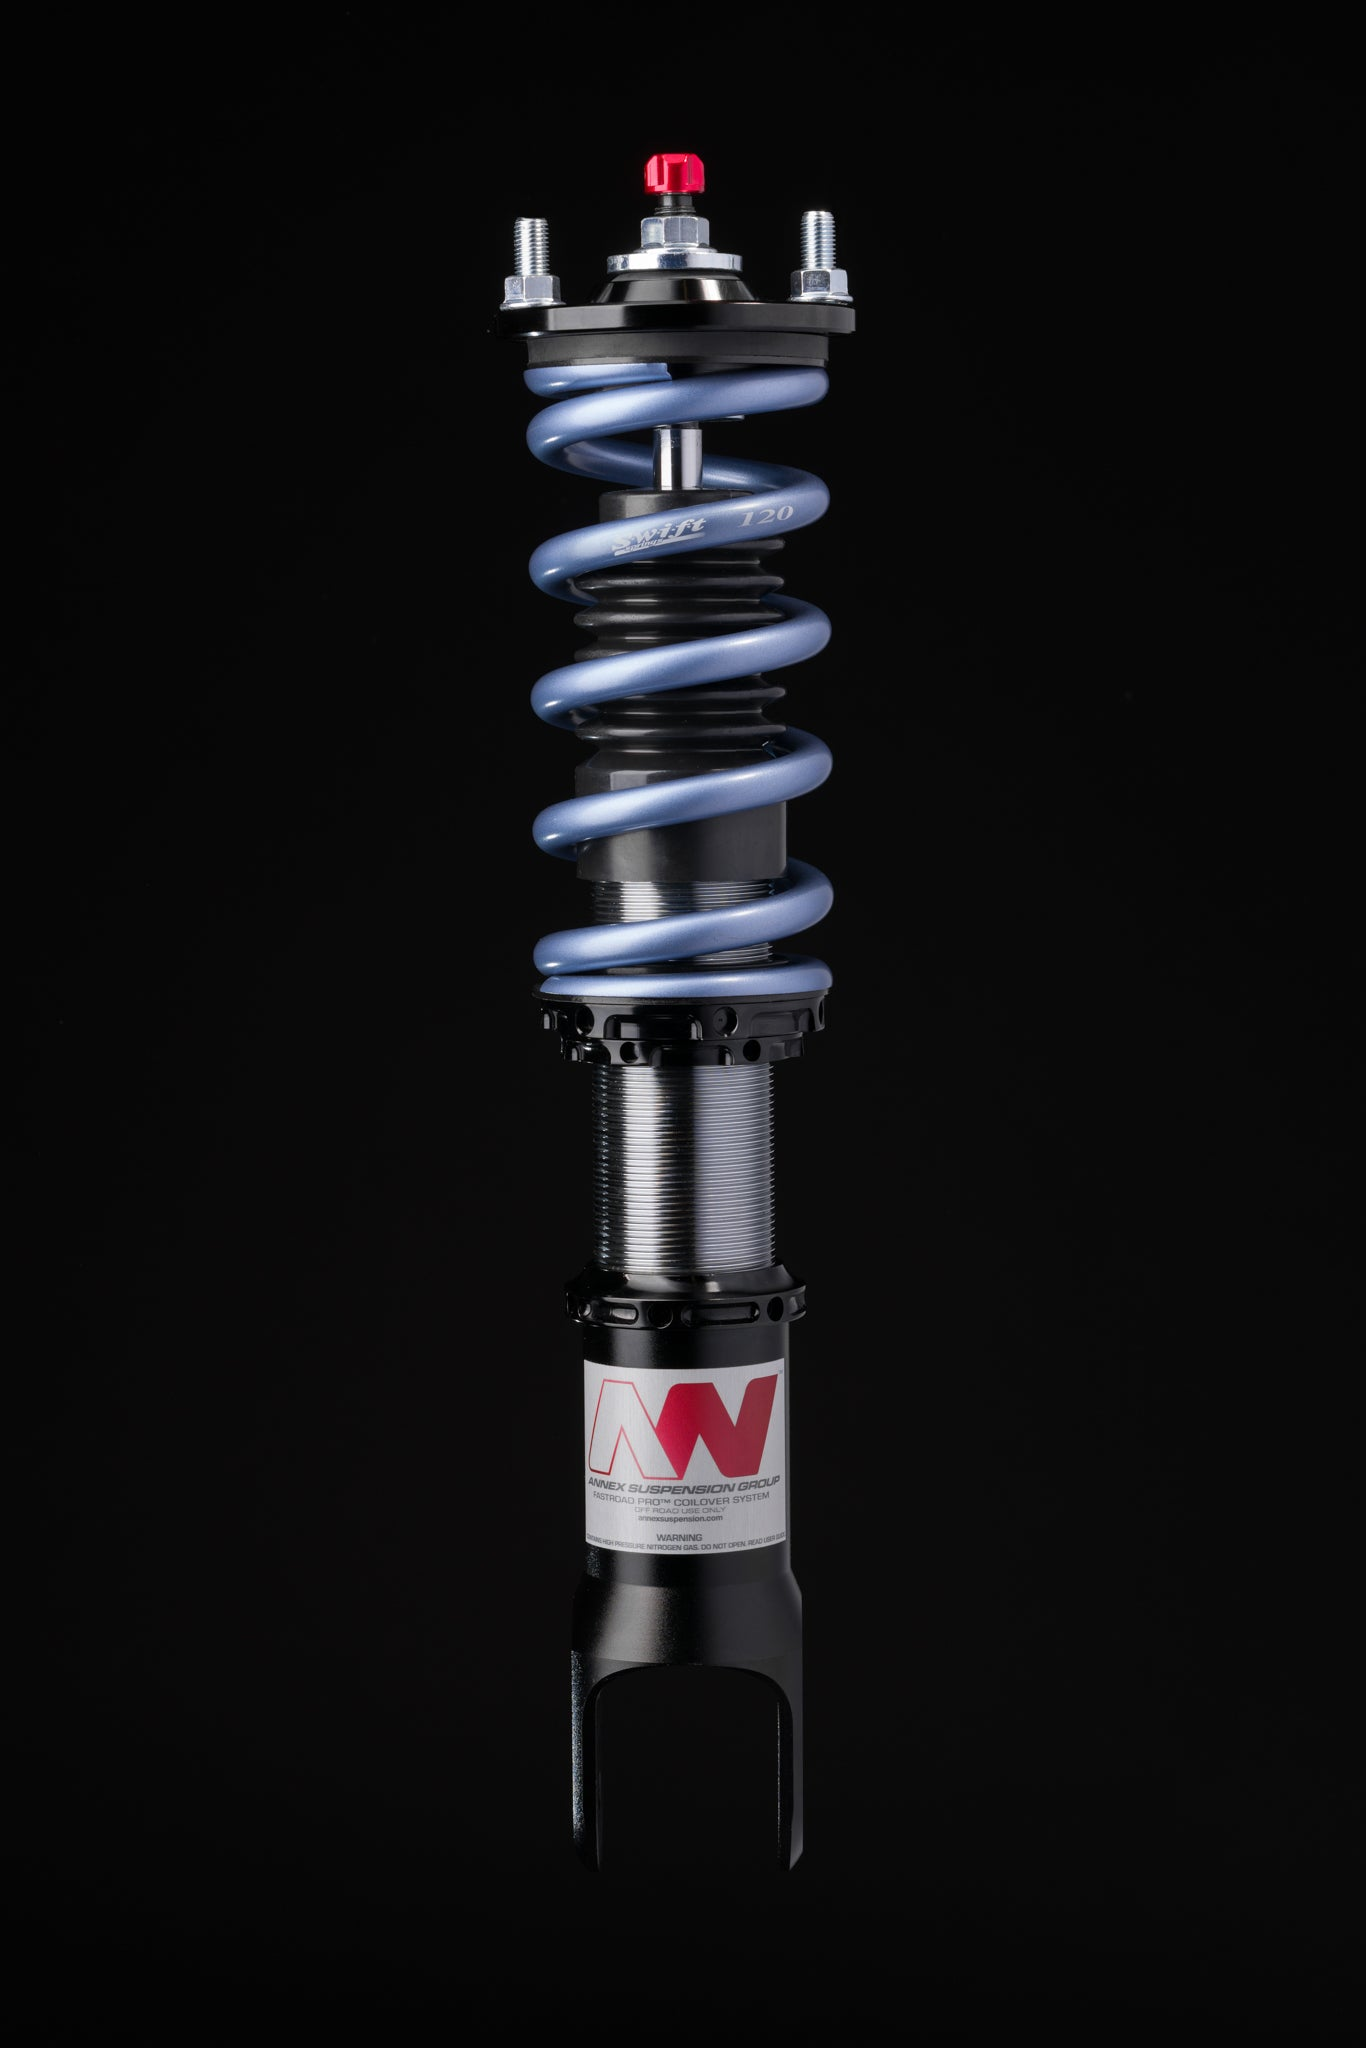 2003-2005 Lancer Evo 8 VIII Performance Suspension Kits by Annex Suspension Group